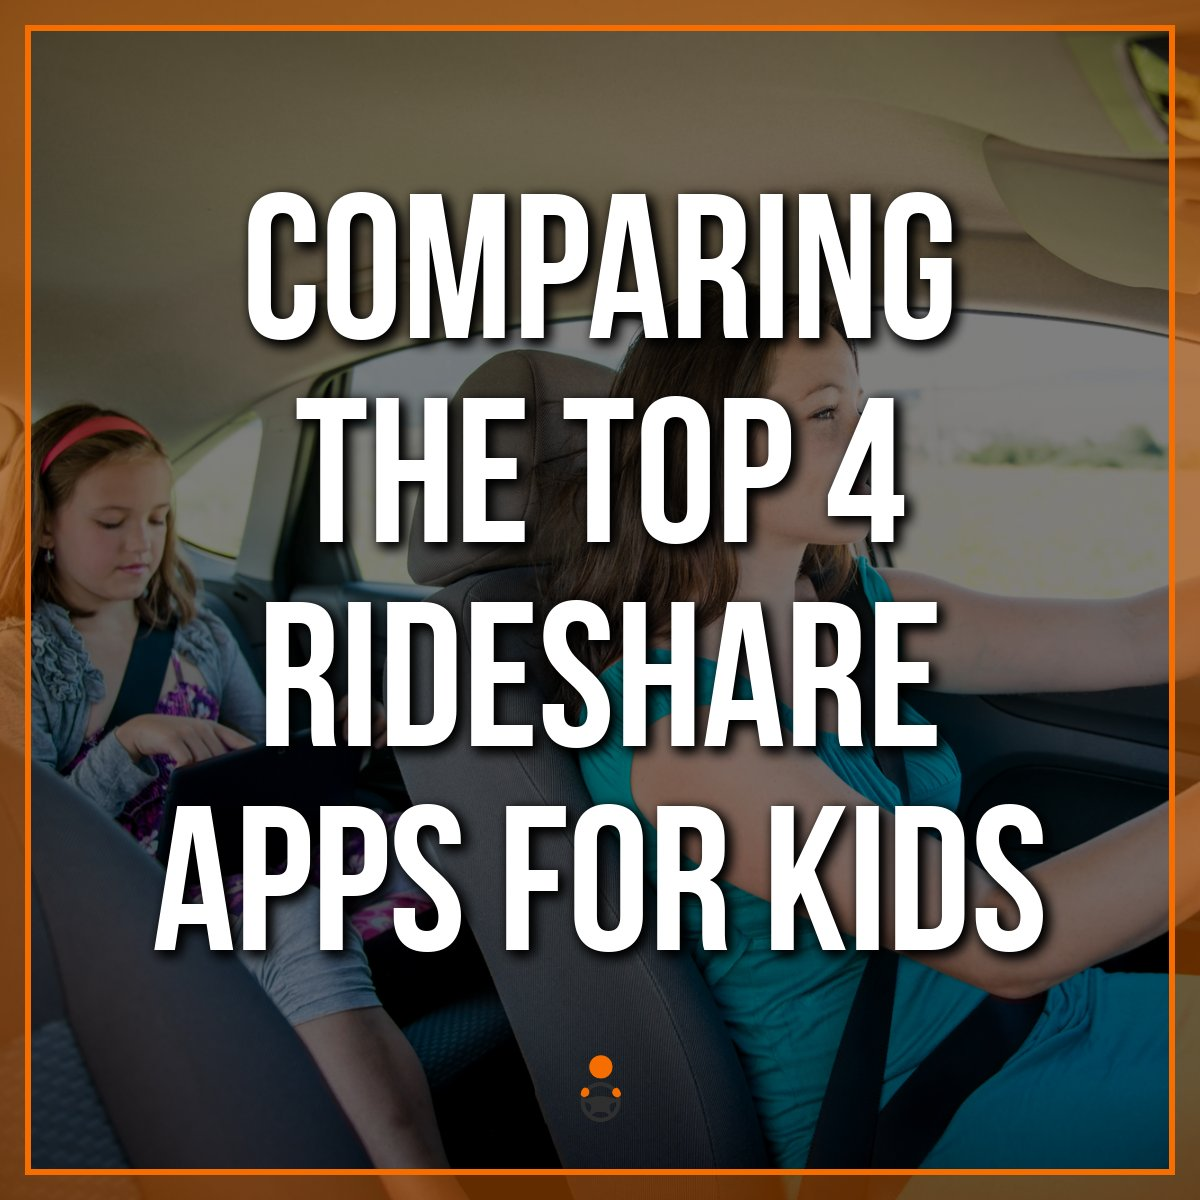 Comparing the Top 4 Rideshare Apps for Kids